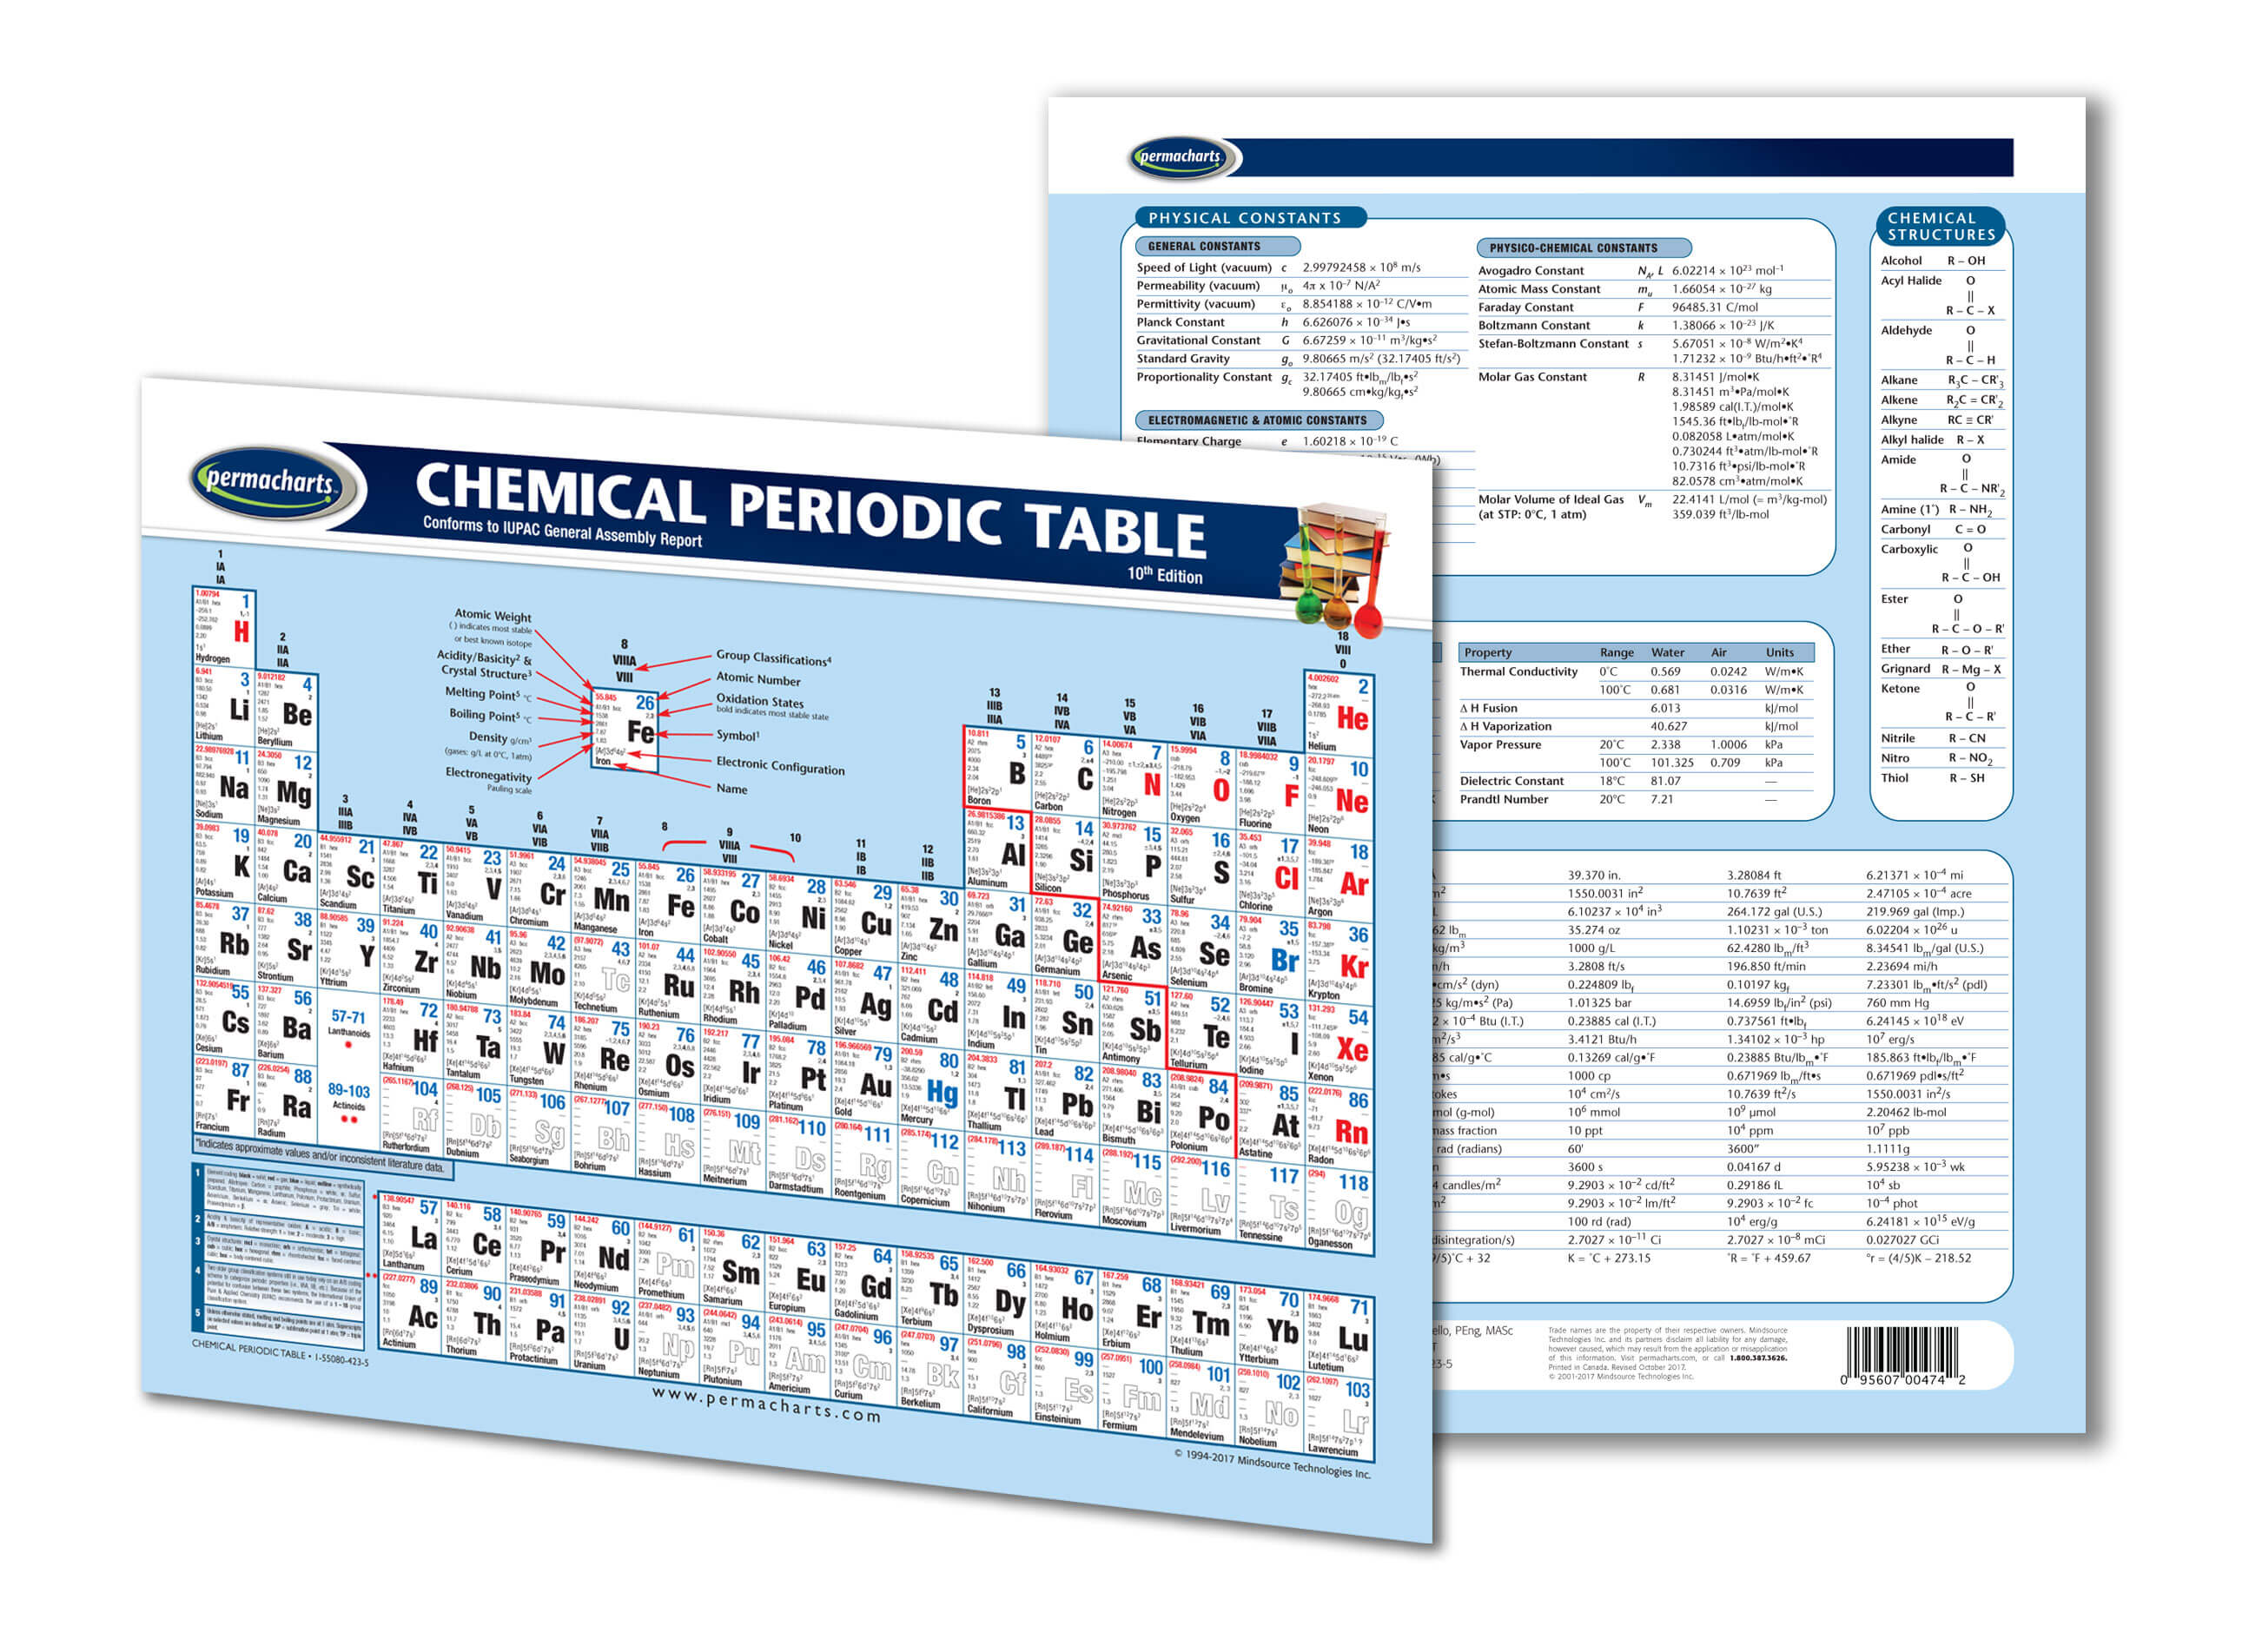 Chemical periodic table chart 85 x 11 laminated reference guide chemical periodic table chart permacharts biocorpaavc